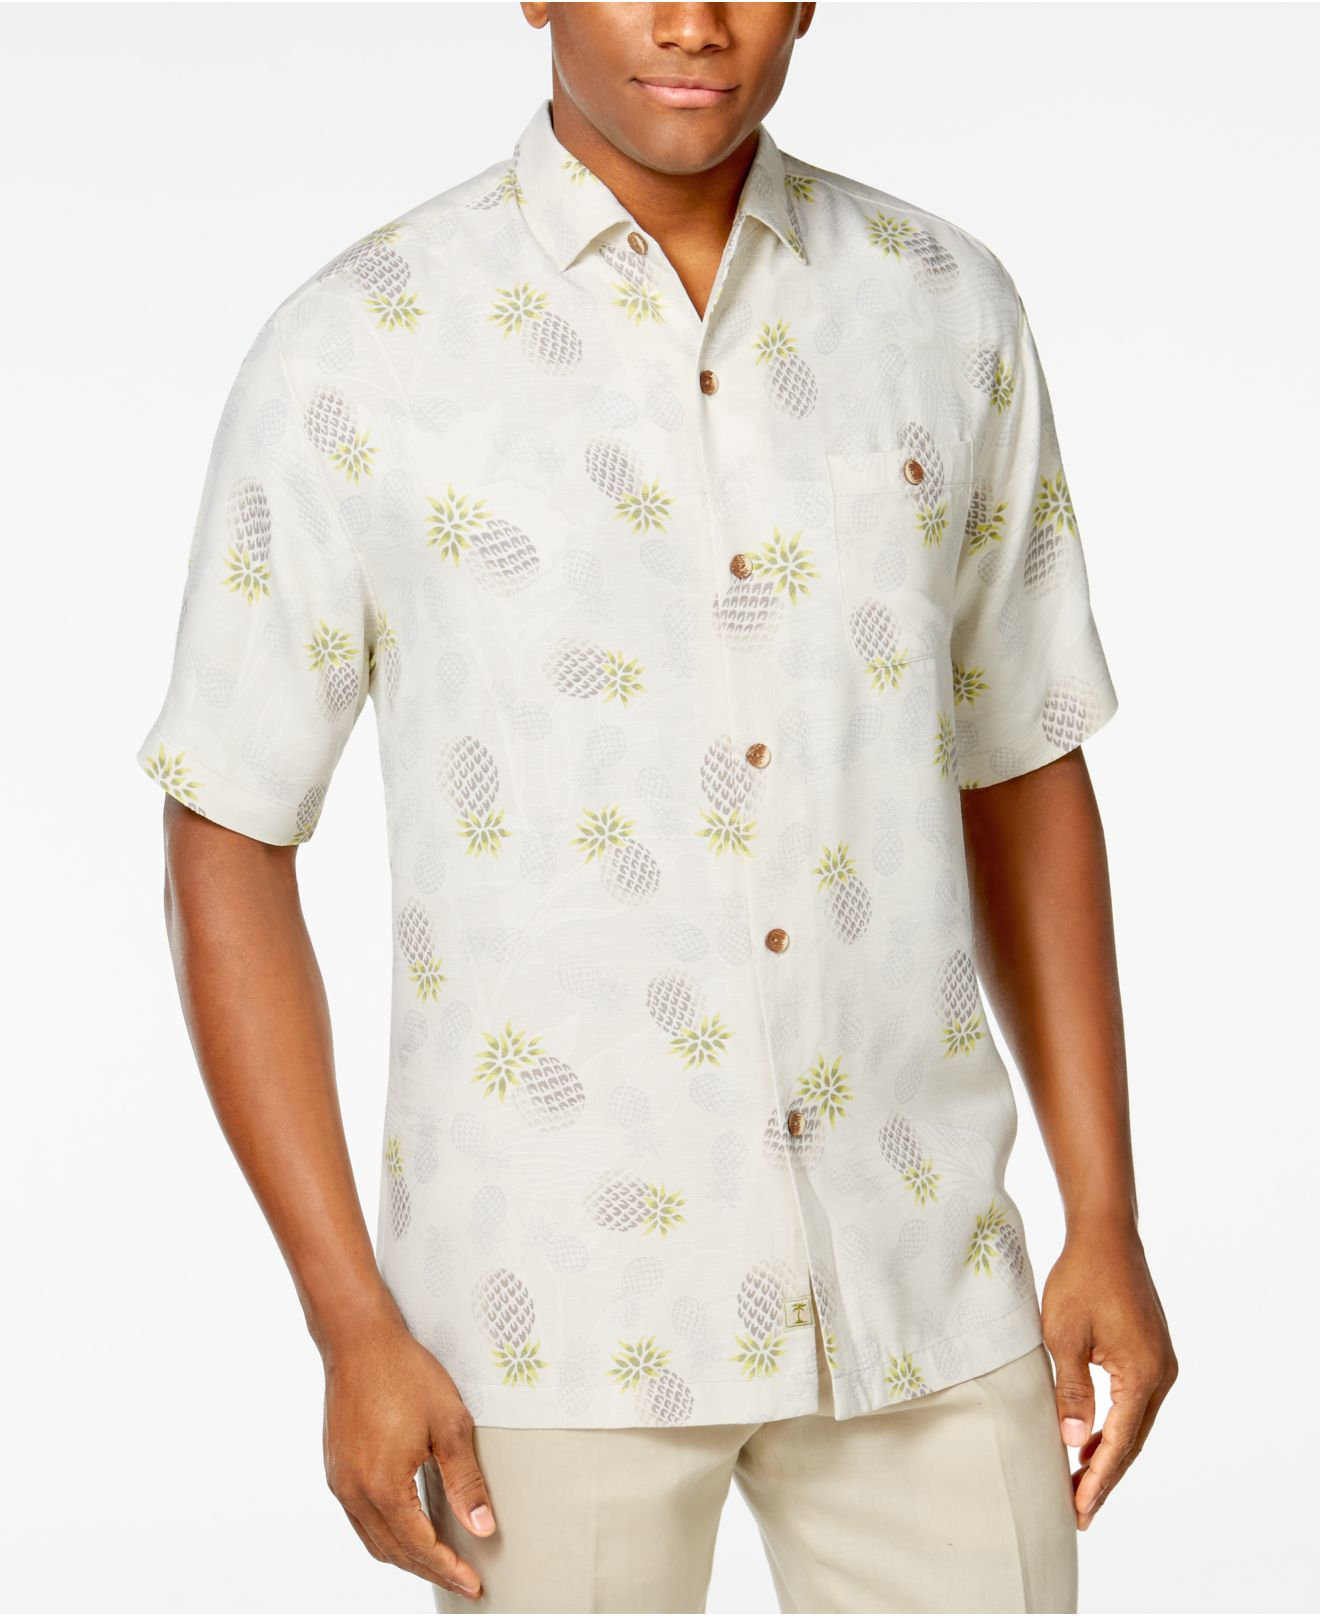 Tommy bahama men 39 s pineapple hideaway short sleeve shirt for Where to buy tommy bahama shirts